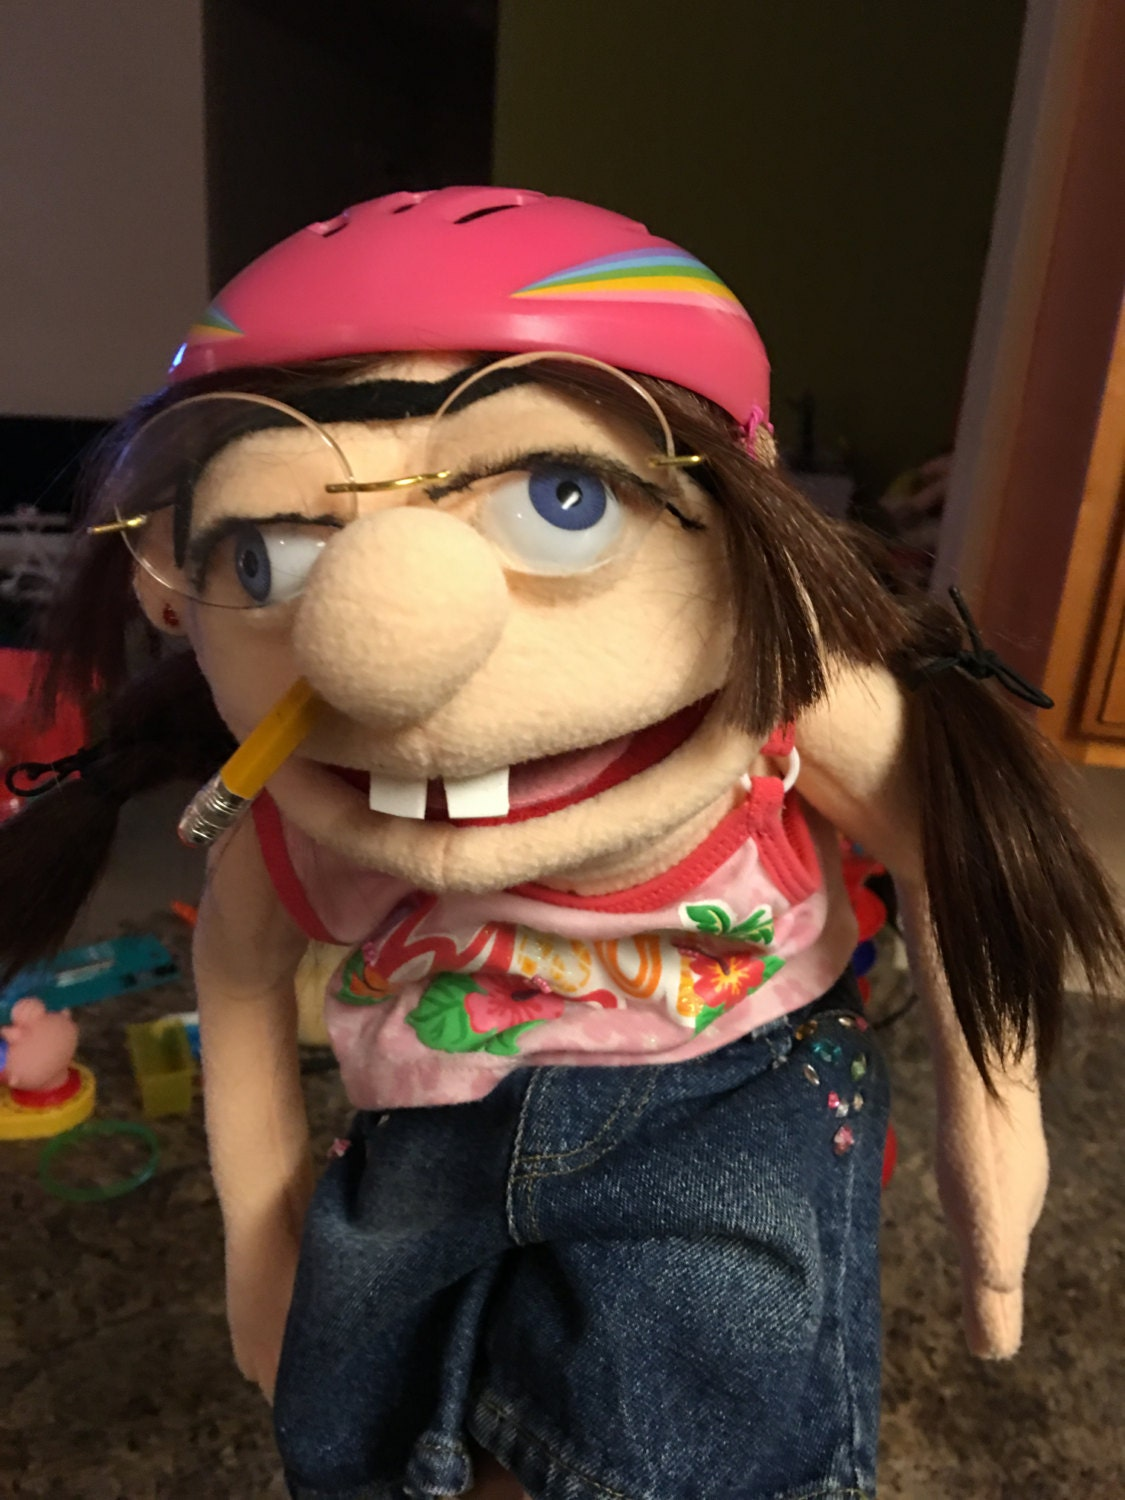 Look Alike Jeffy S Sister Puppet From Sml Youtube By Evelinka